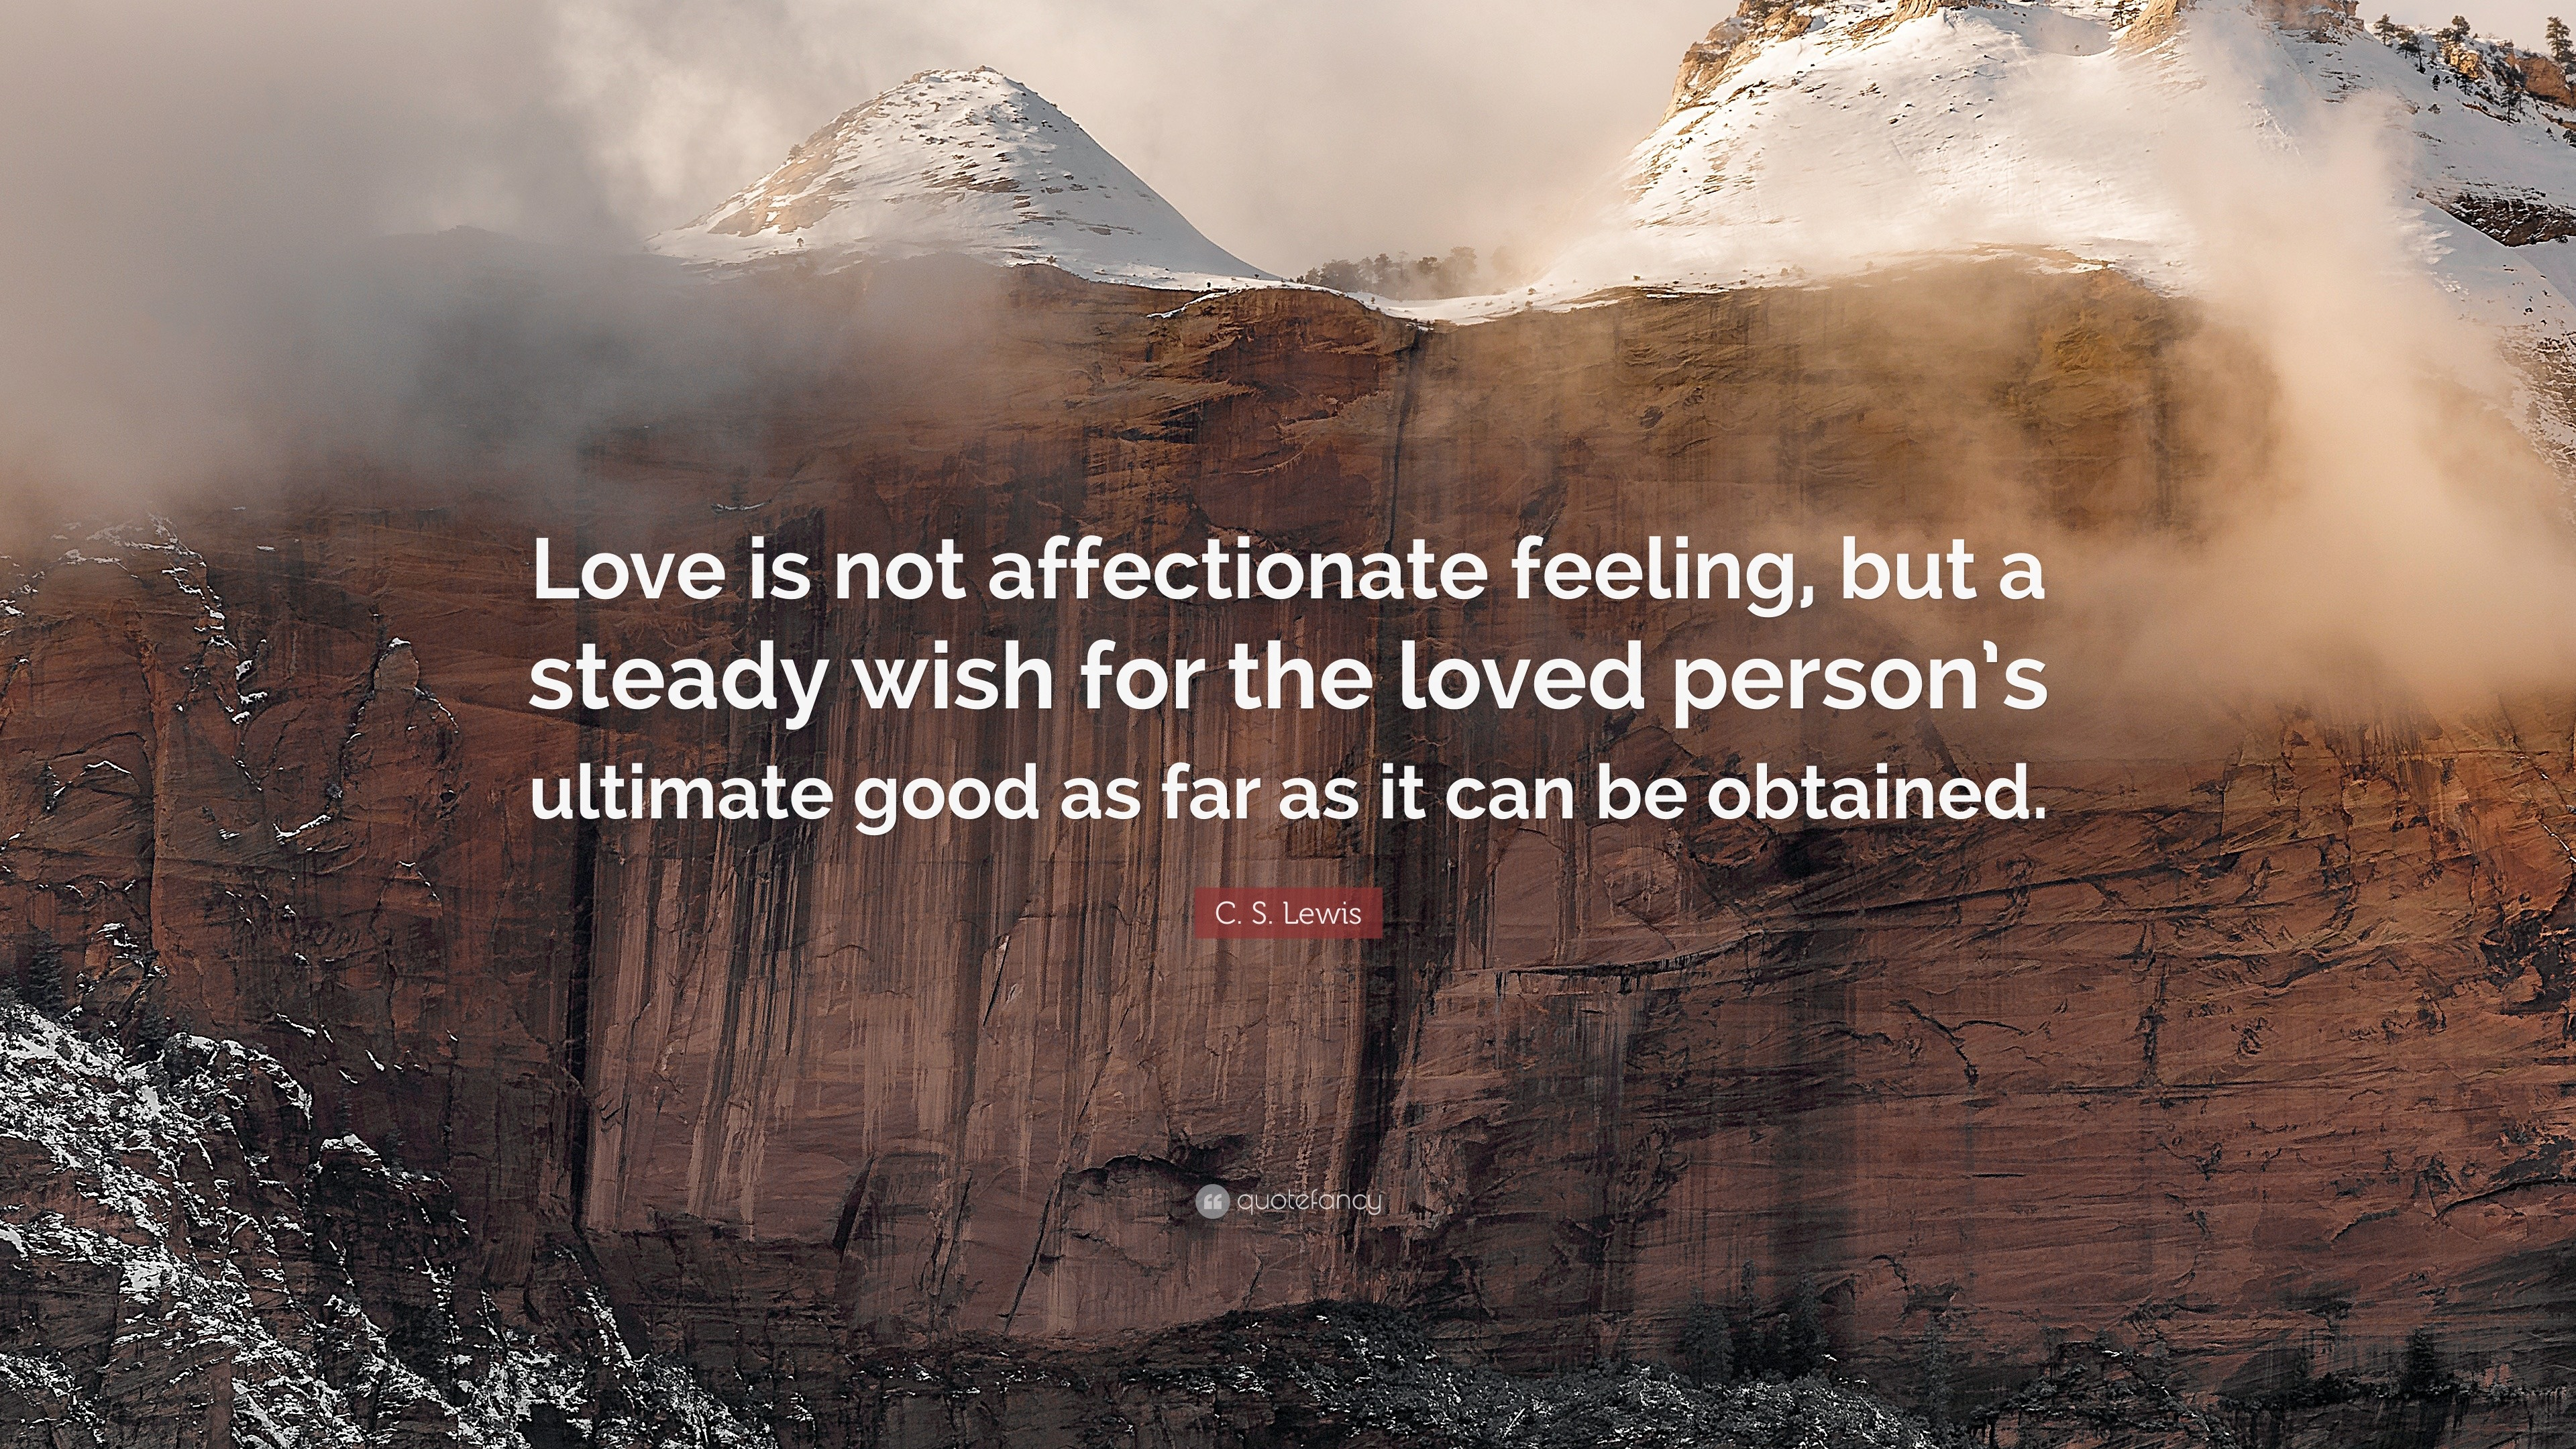 Powerful Love Quotes 10 Powerful Quotes About Love And Marriage For Valentine's Day